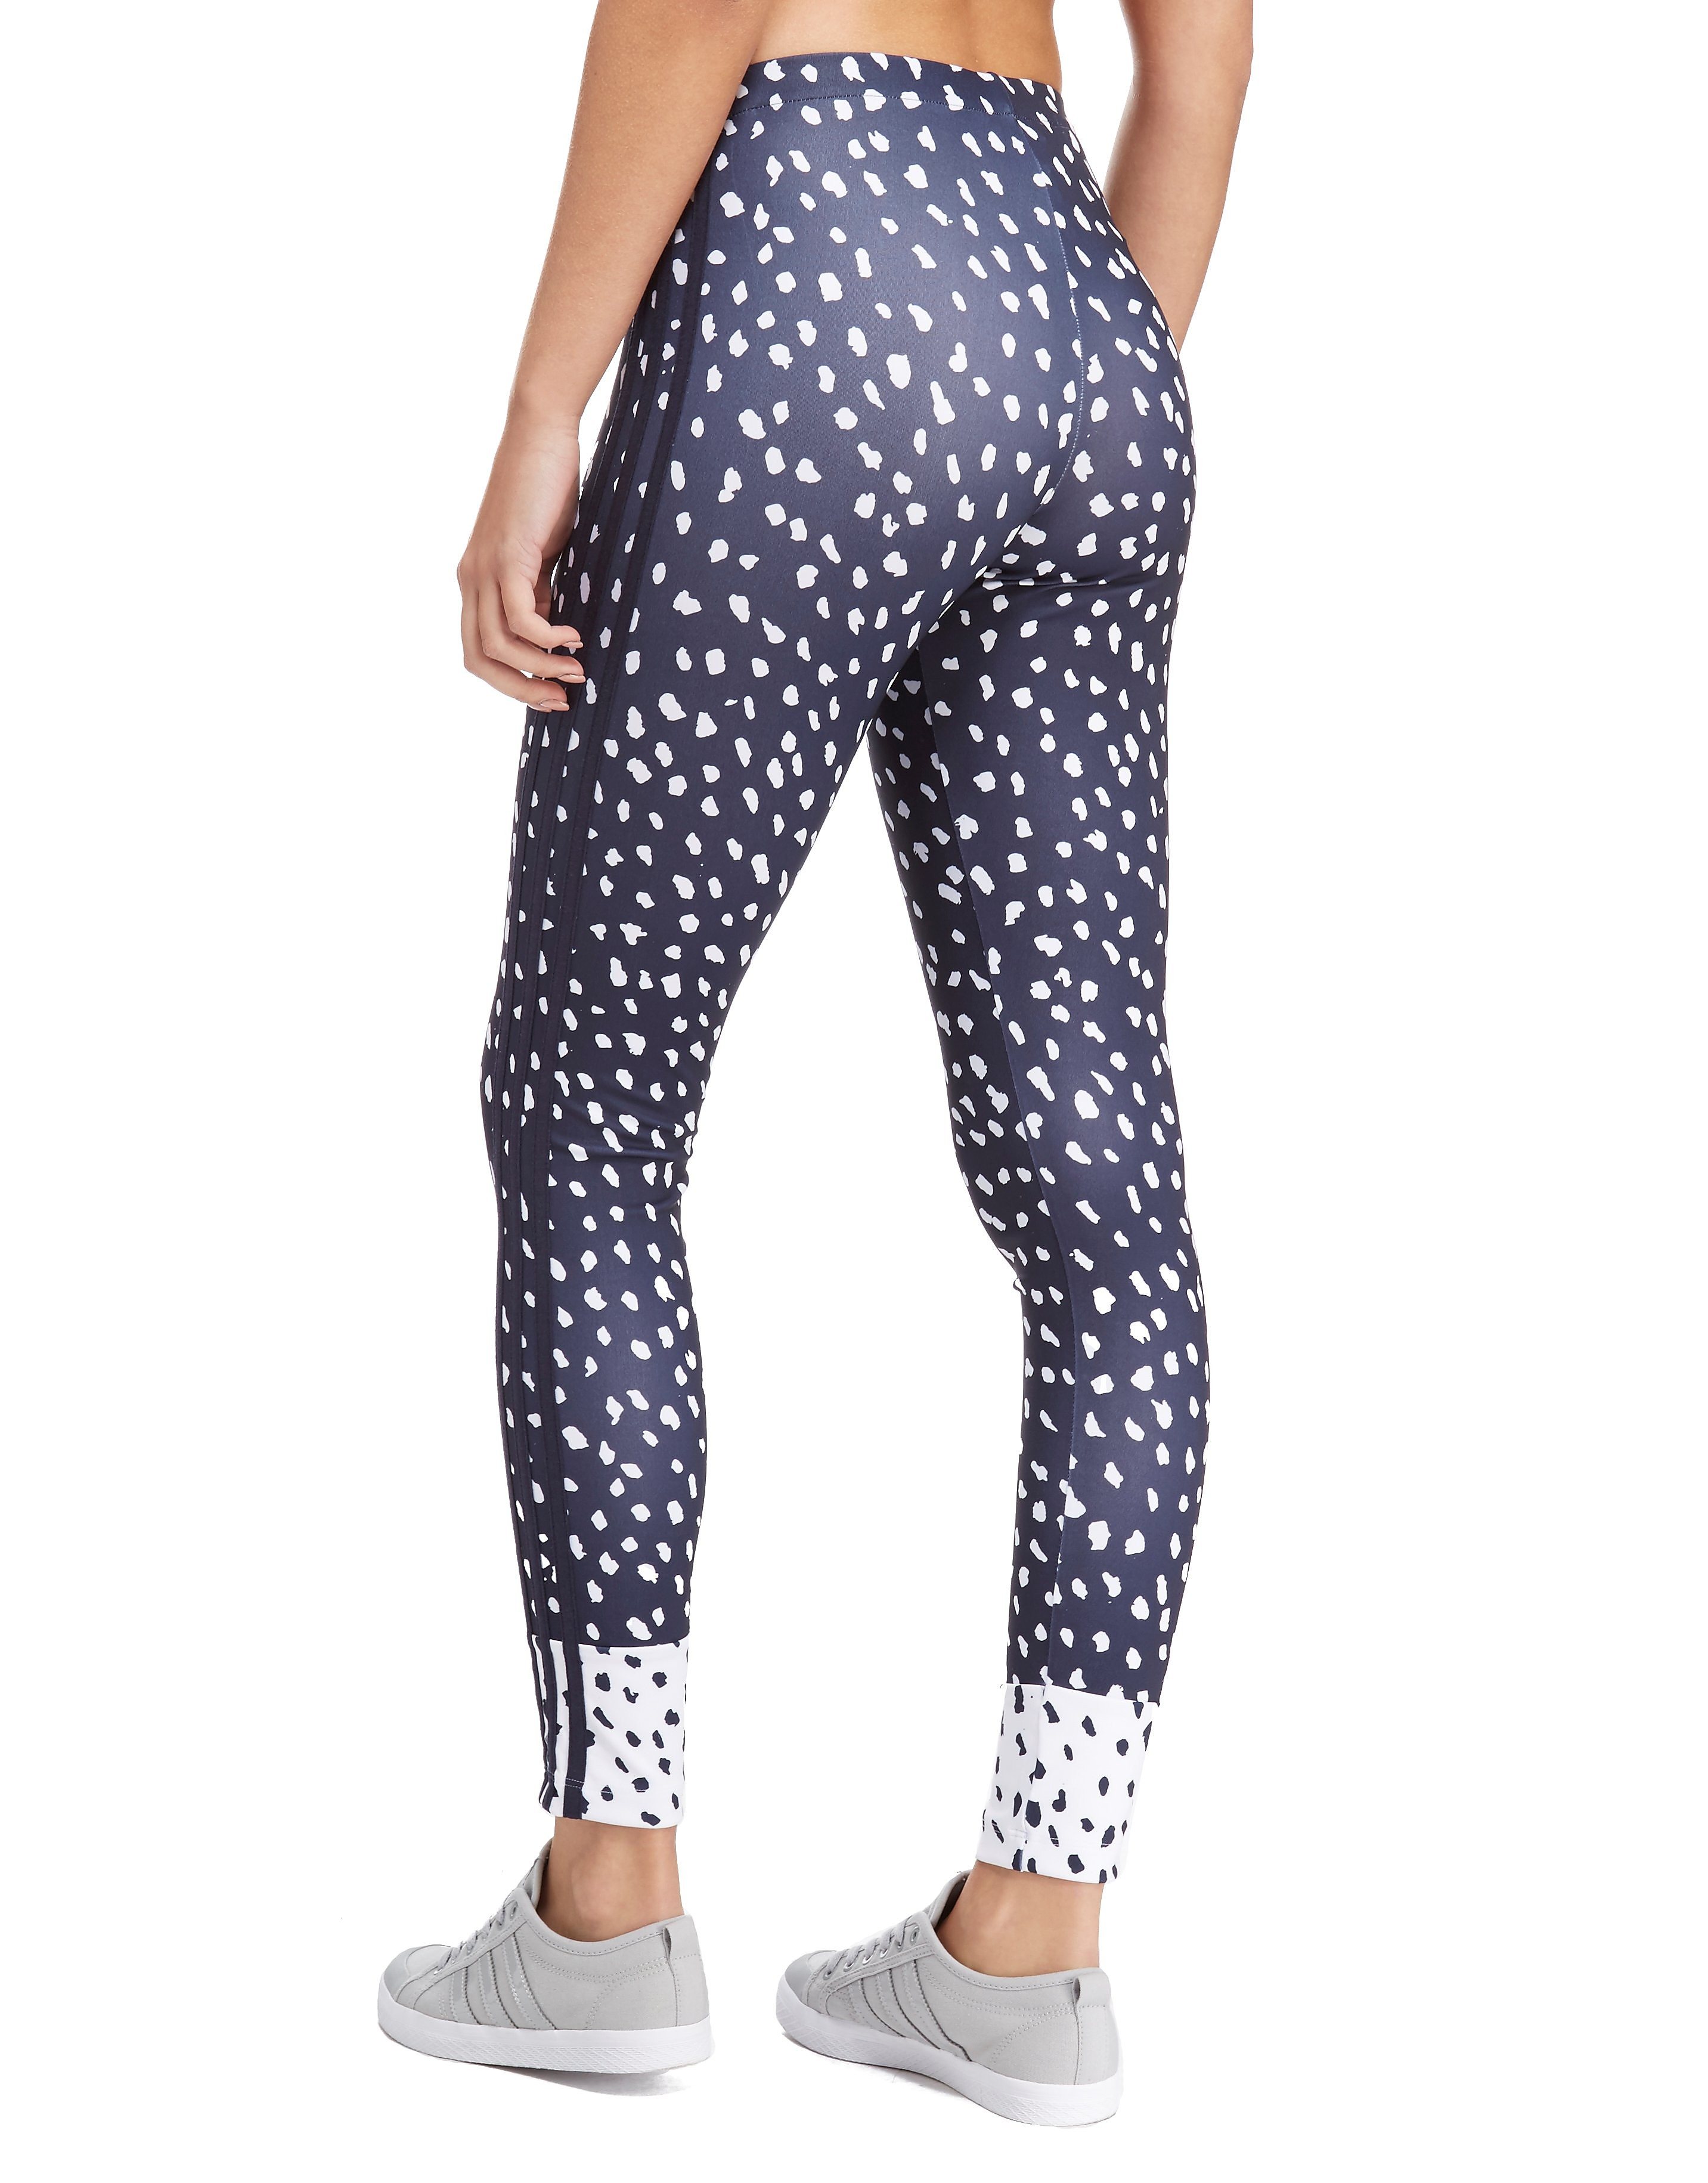 adidas Originals Print Leggings